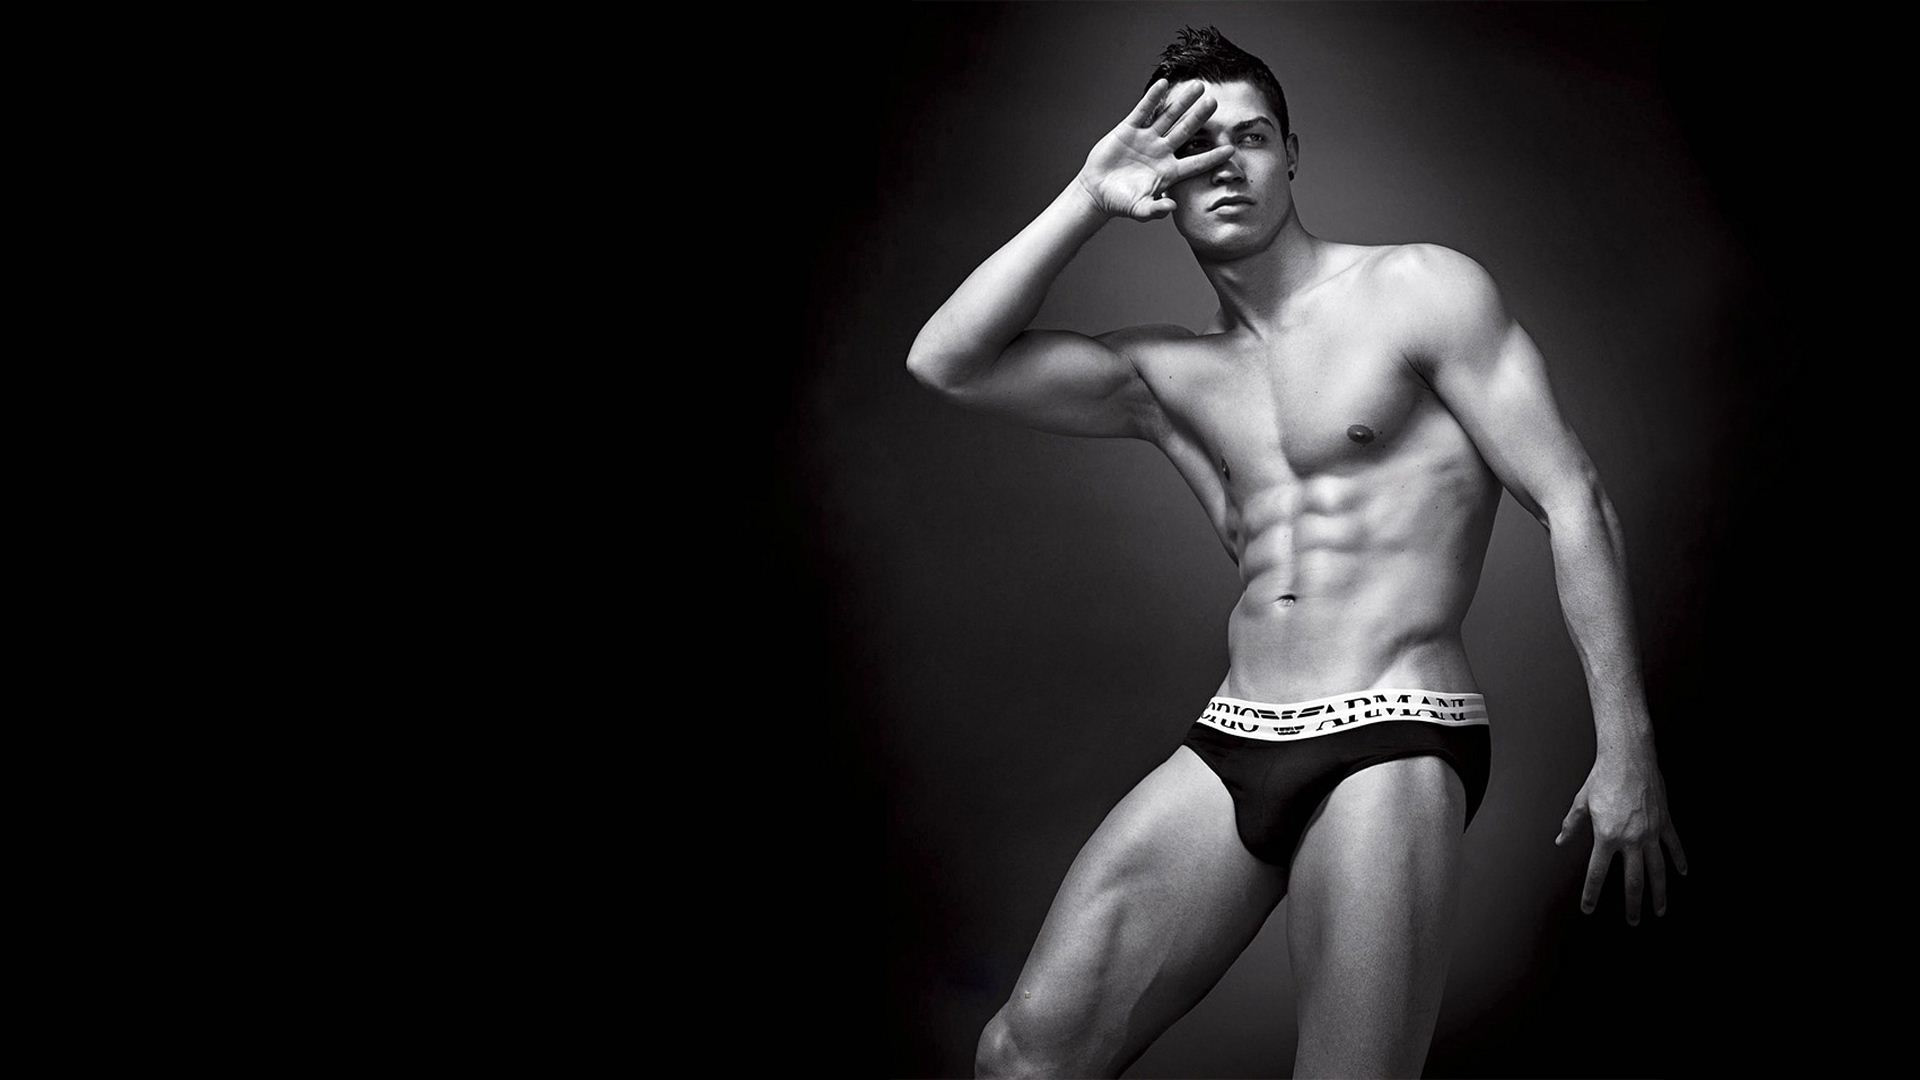 Hot naked Cristiano Ronaldo Armani wallpaper